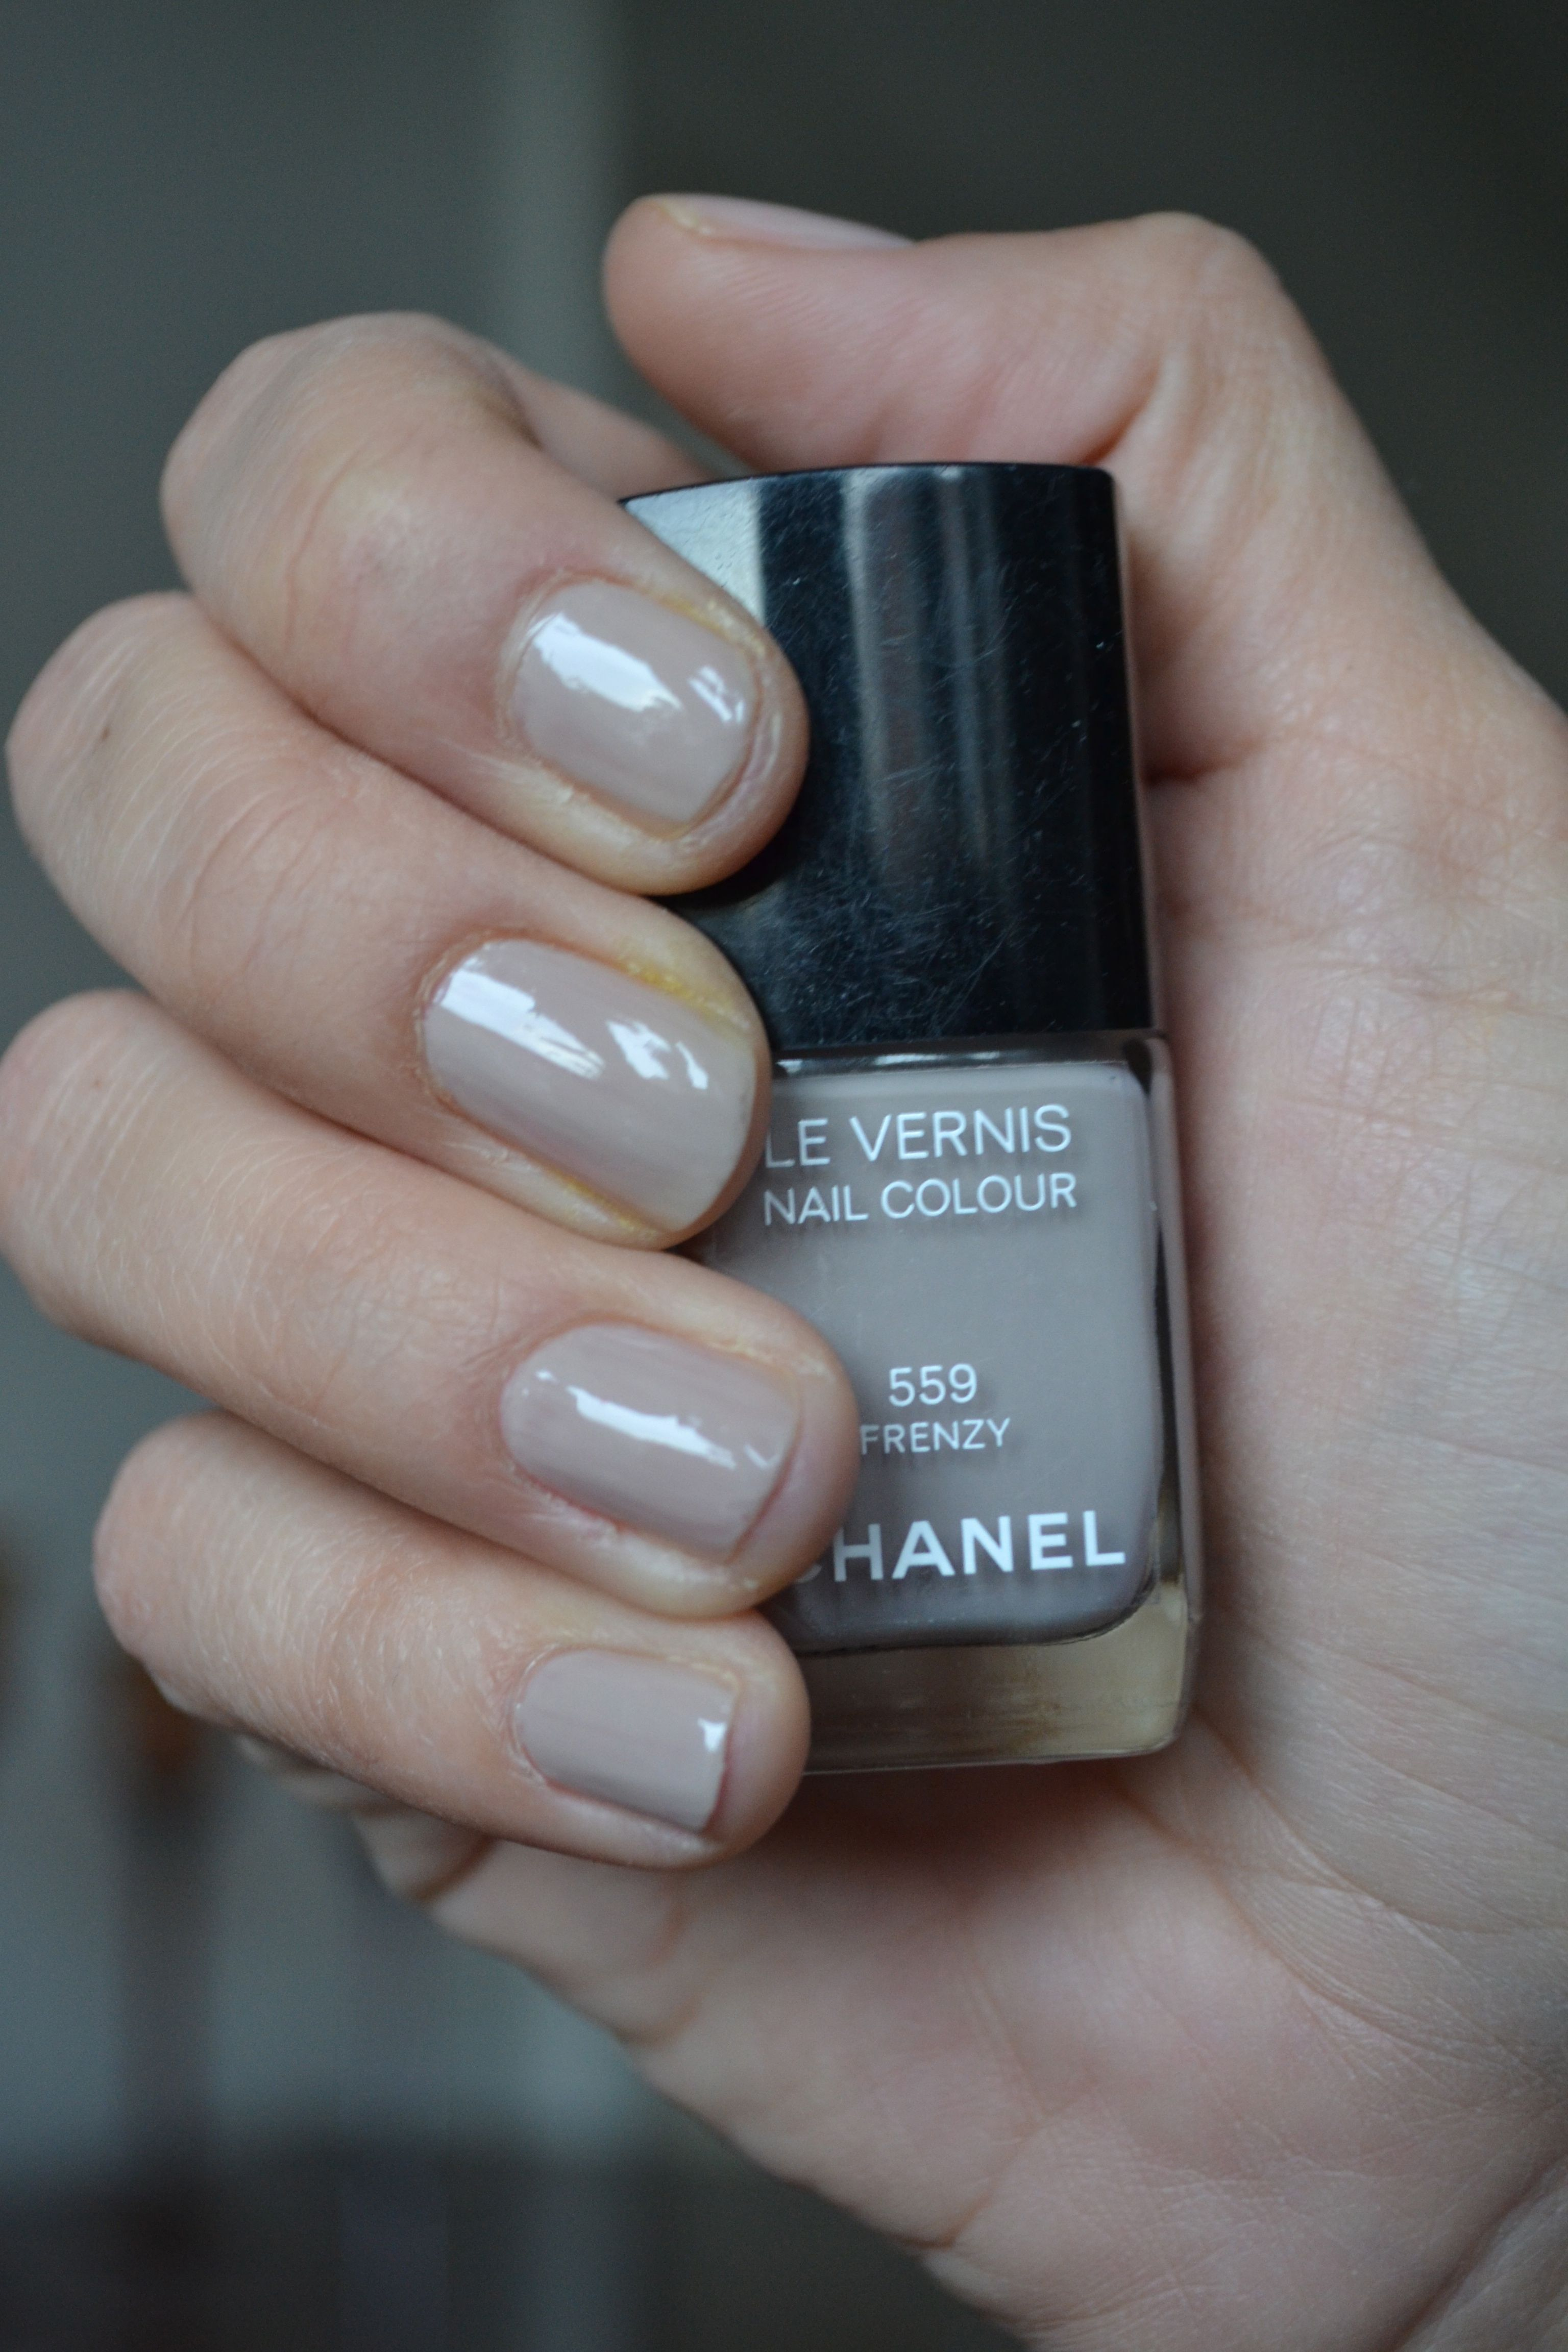 10 Best Chanel Nail Polishes Reviews 2019 Update Chanel Nail Polish Chanel Nails Grey